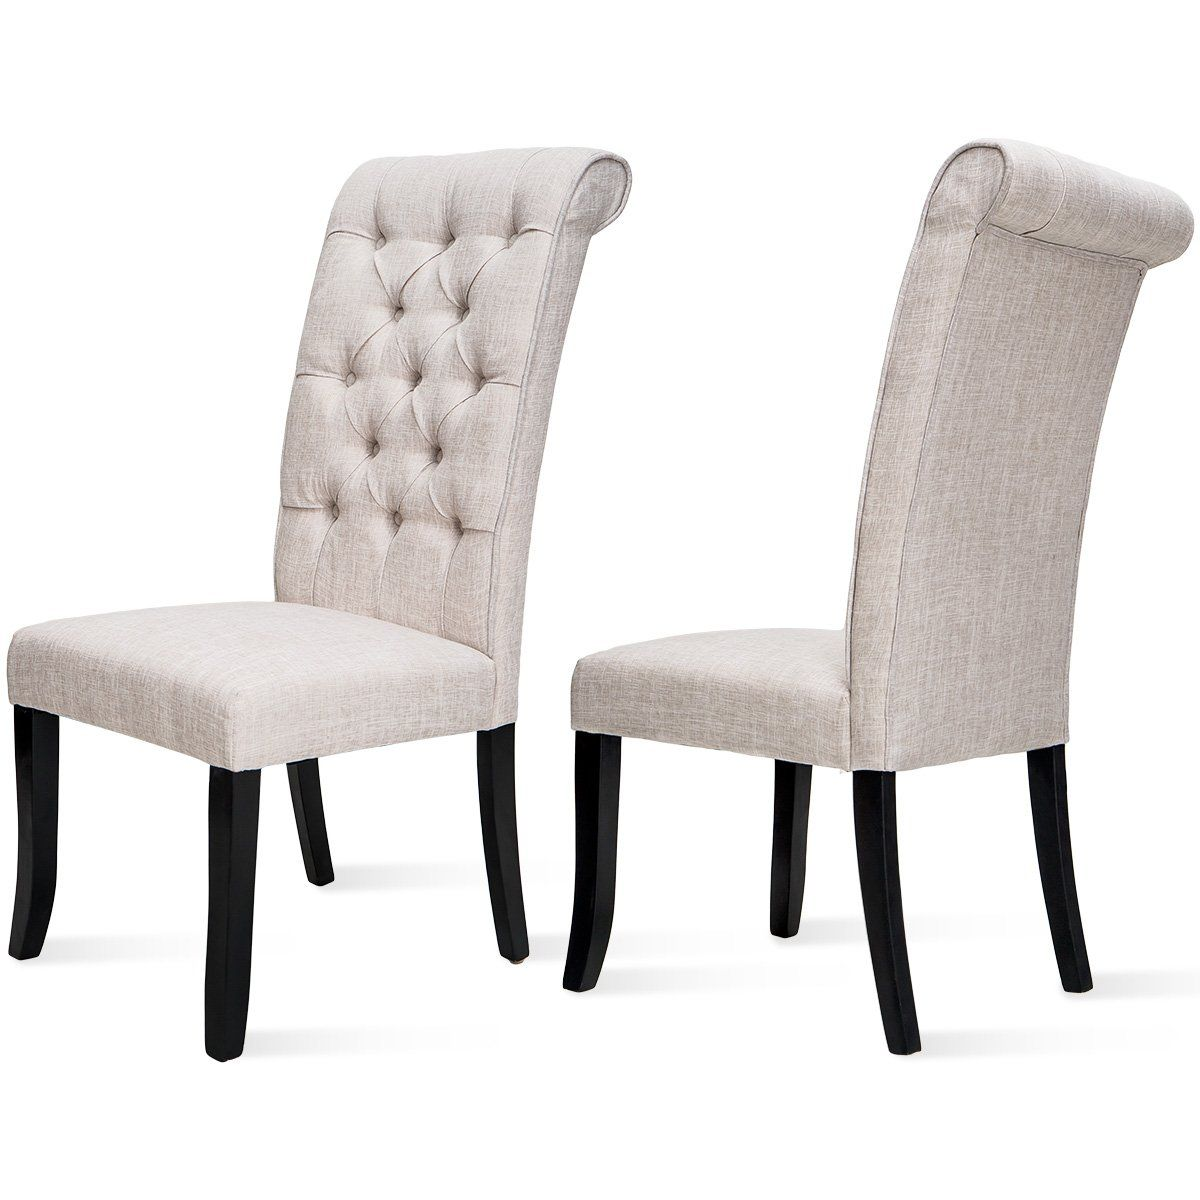 Harper&Bright Design Tufted Arm Dining Accent Chair, Set